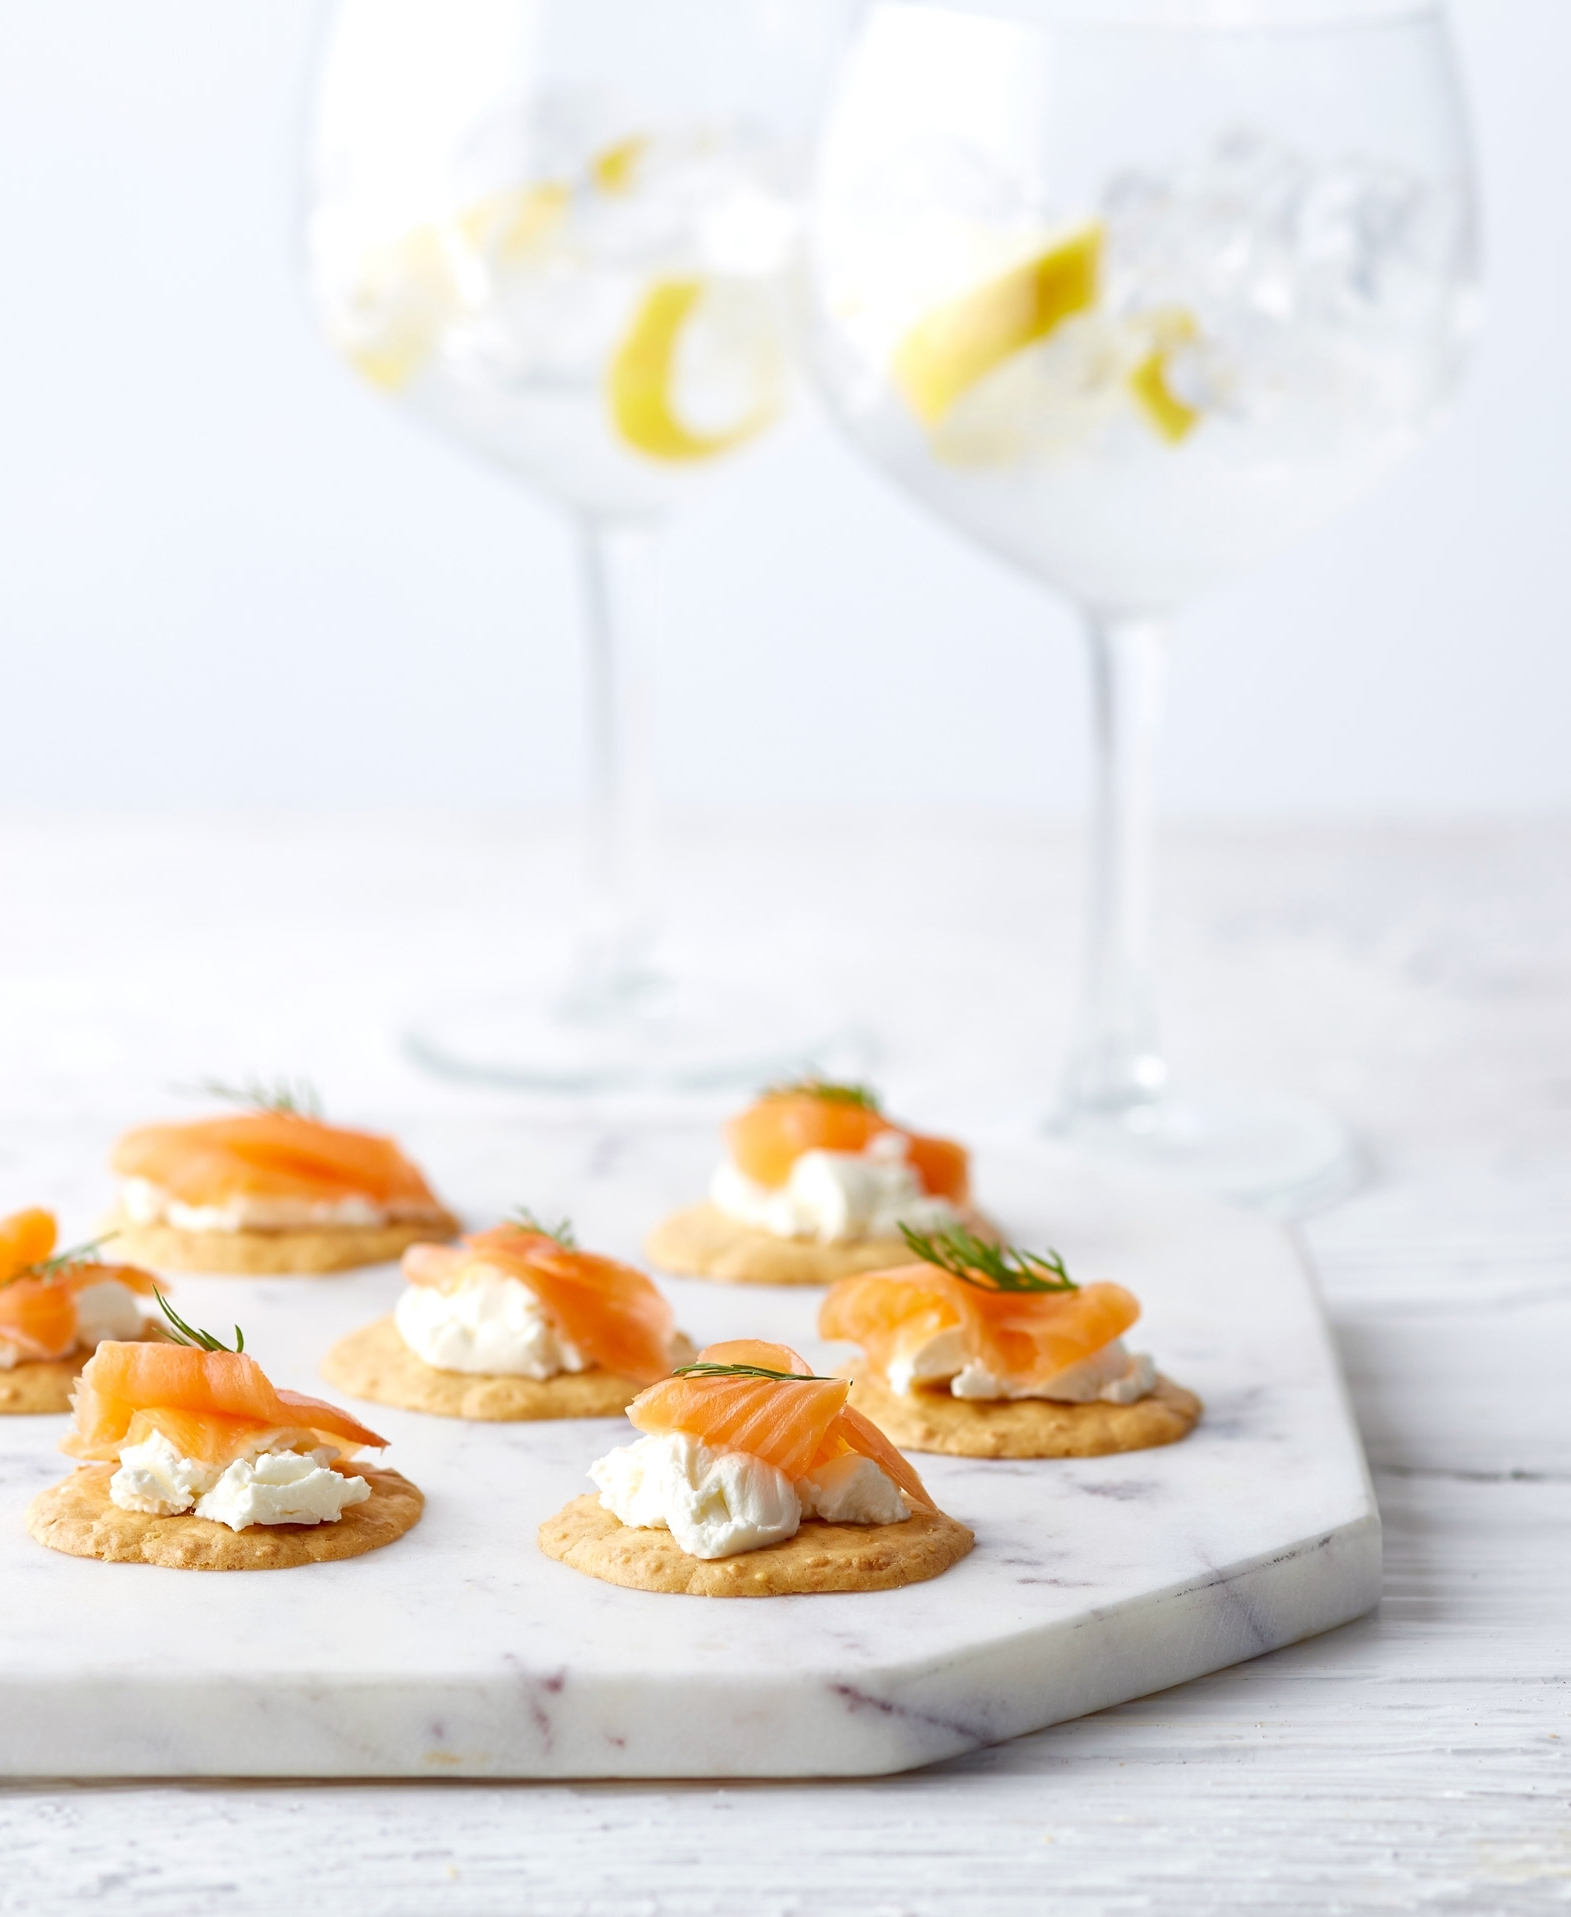 Smoked_salmon_canapes_Fudges_wafer.jpg